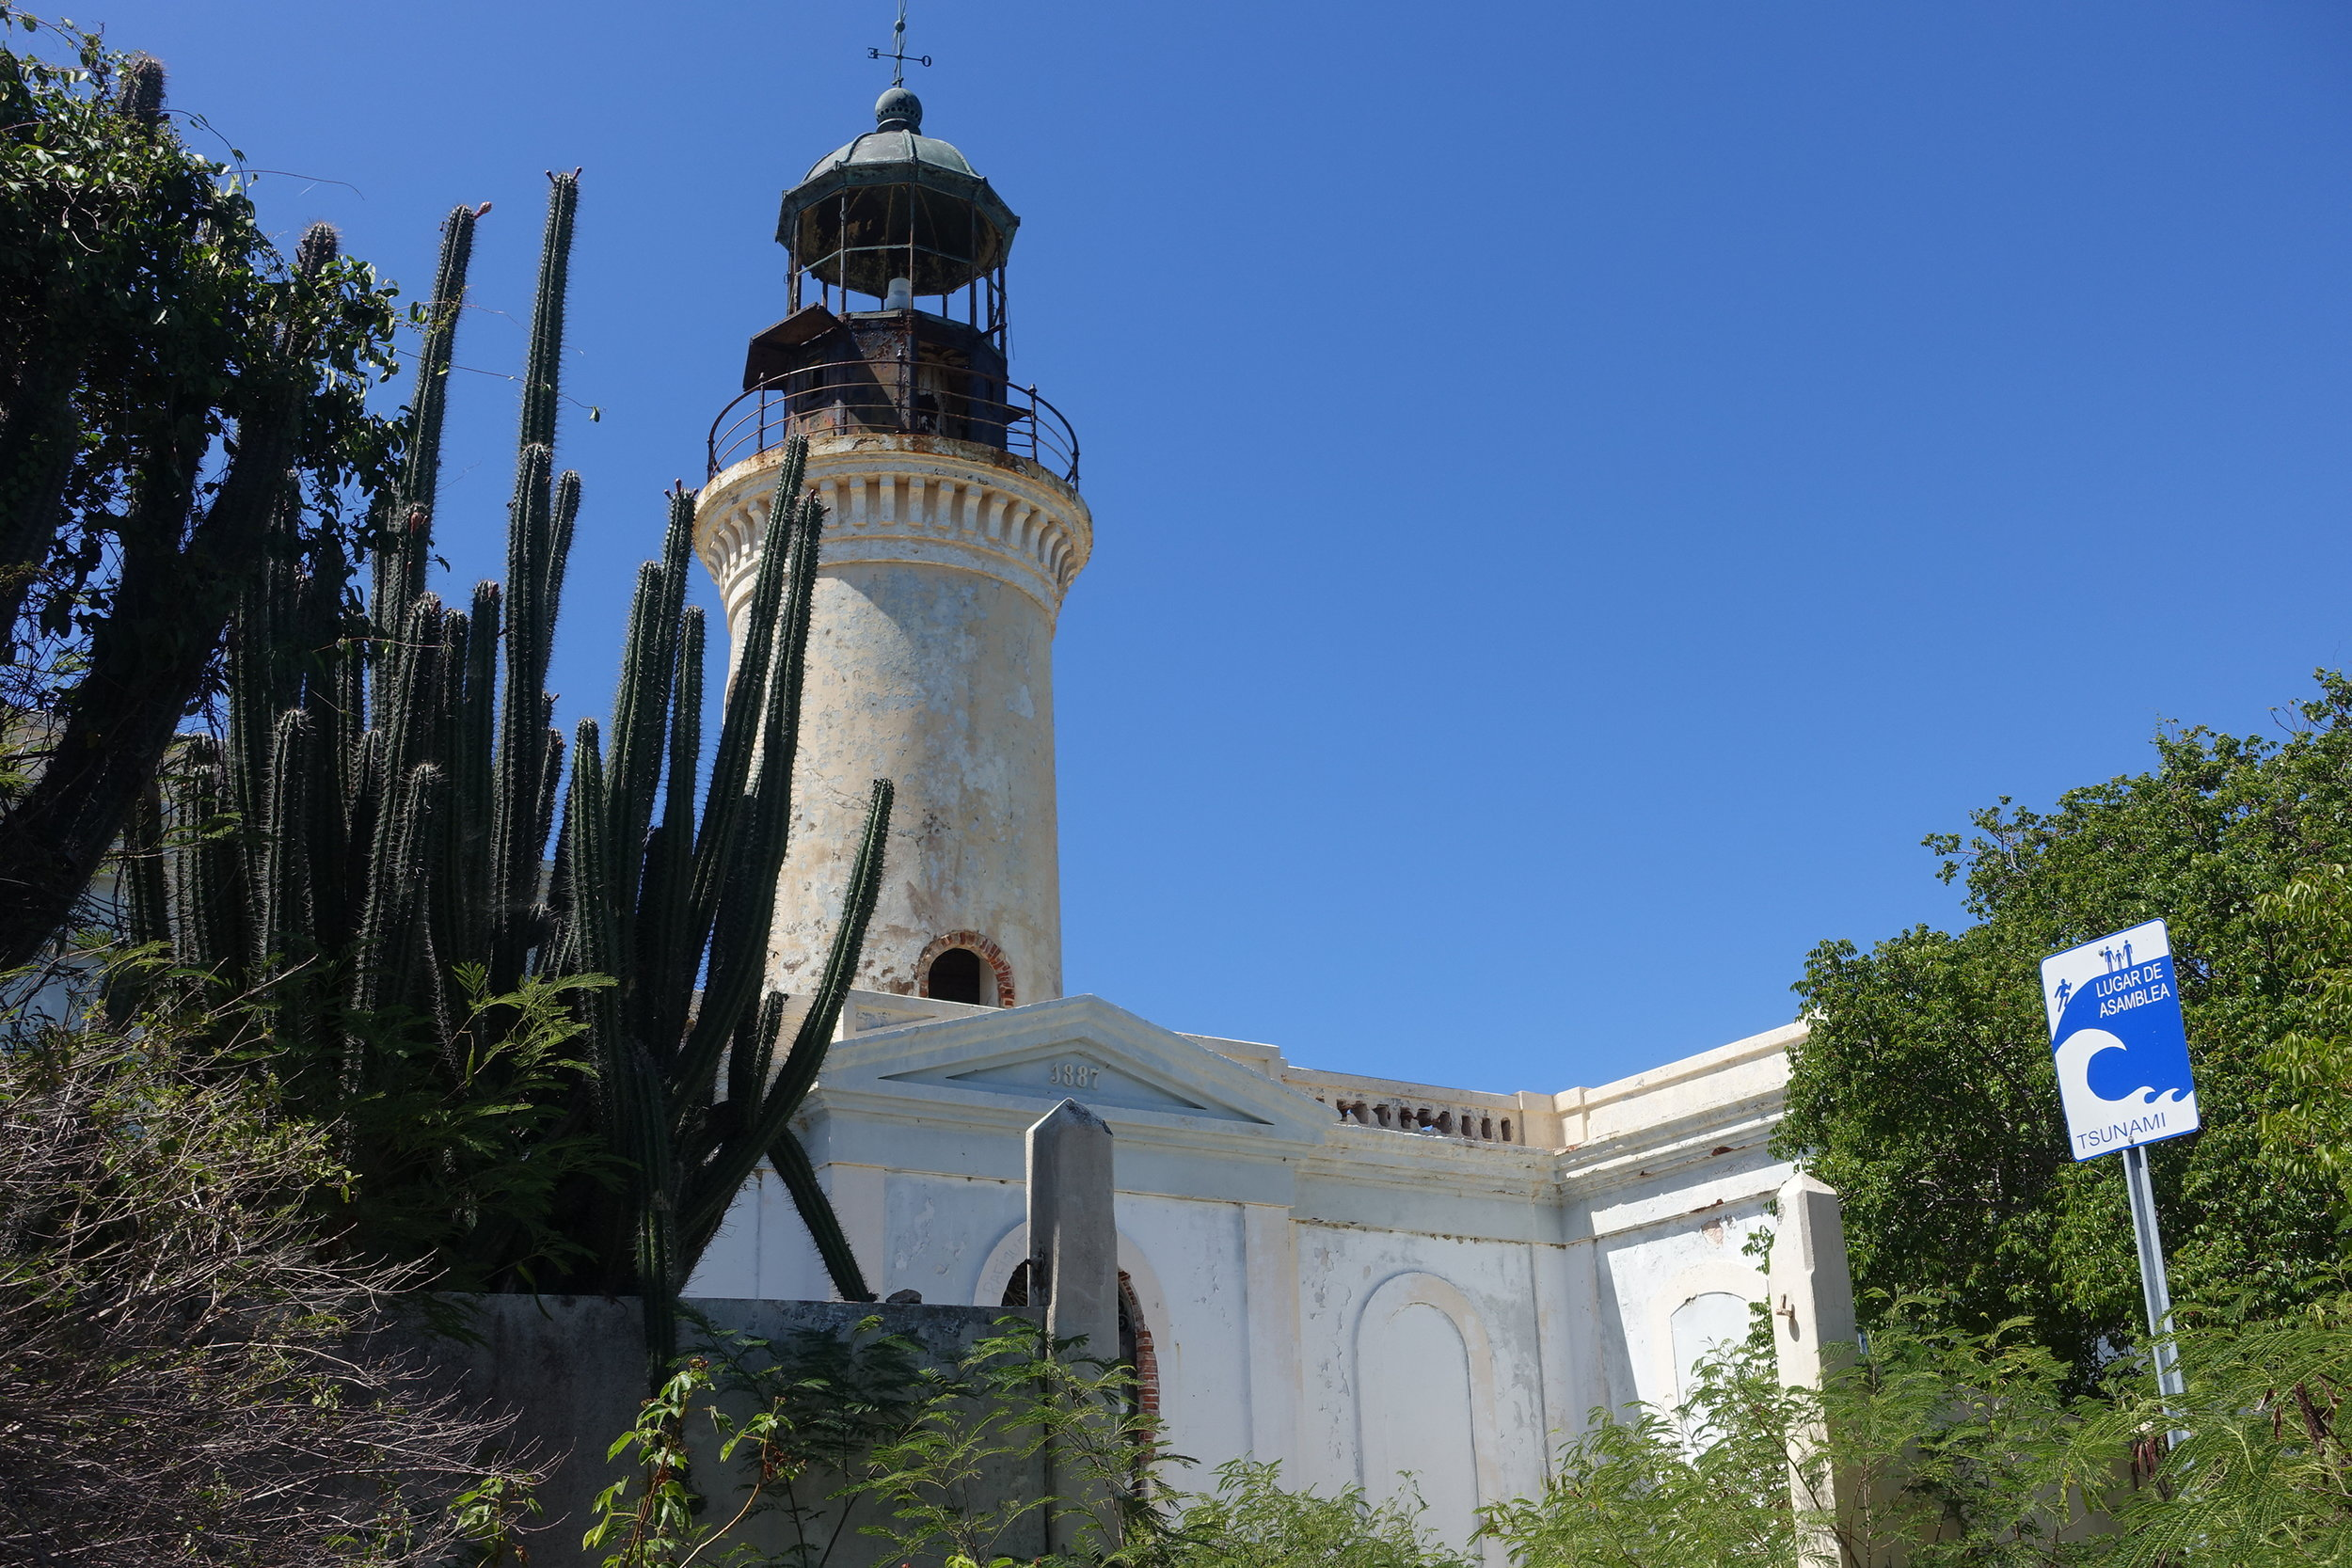 the old lighthouse (faro)